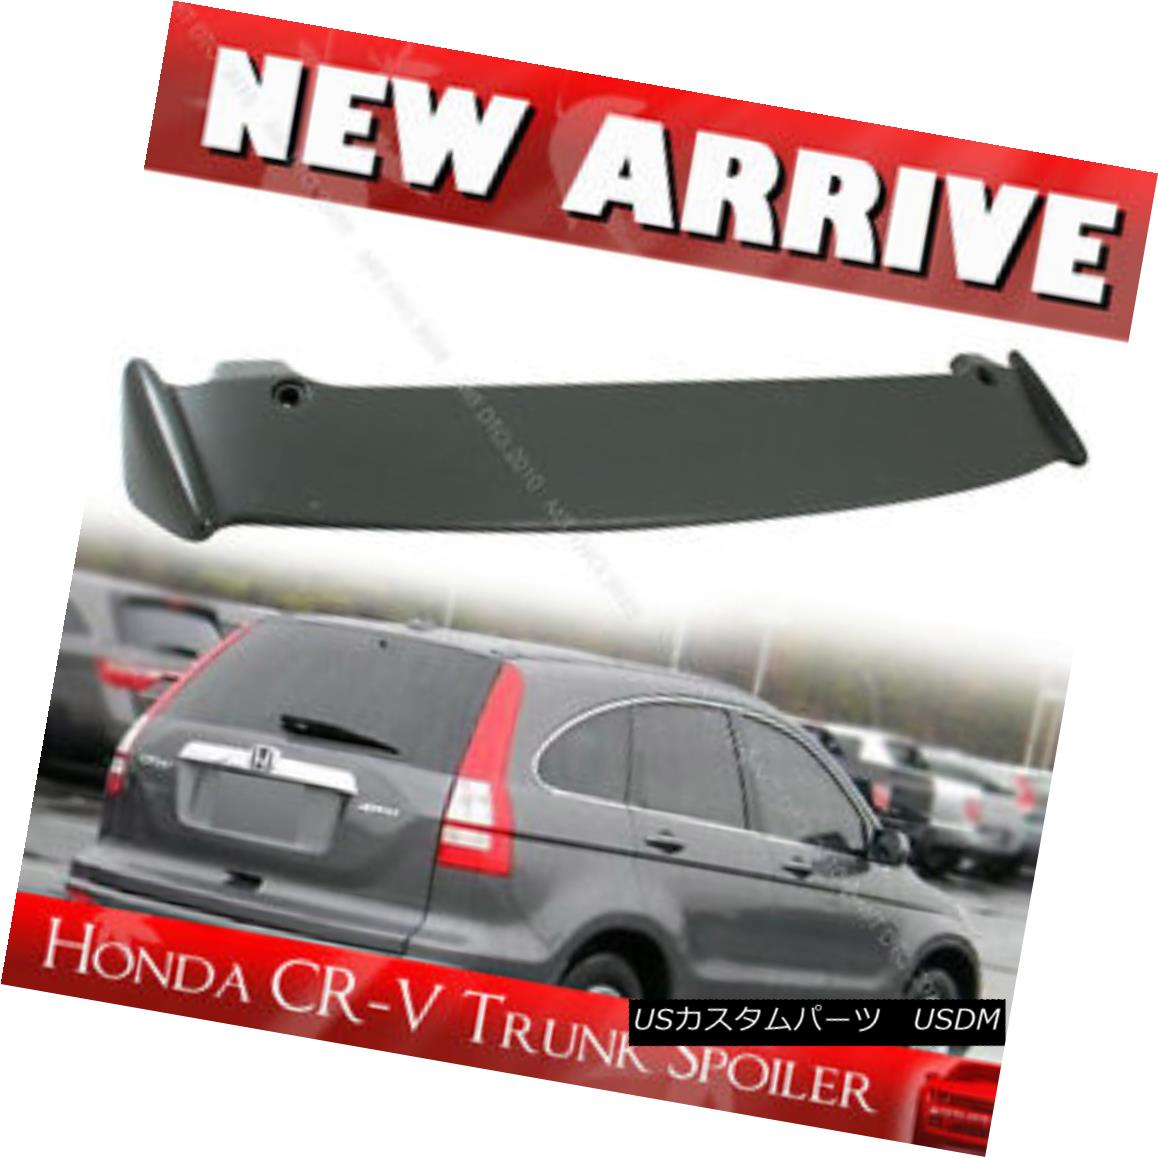 エアロパーツ For Honda CR-V CRV 3rd Mugen-Look Unpainted Roof Trunk Spoiler 07 11 ホンダCR-V CRV第3回無限遠ルーフトランク・スポイラー07 11